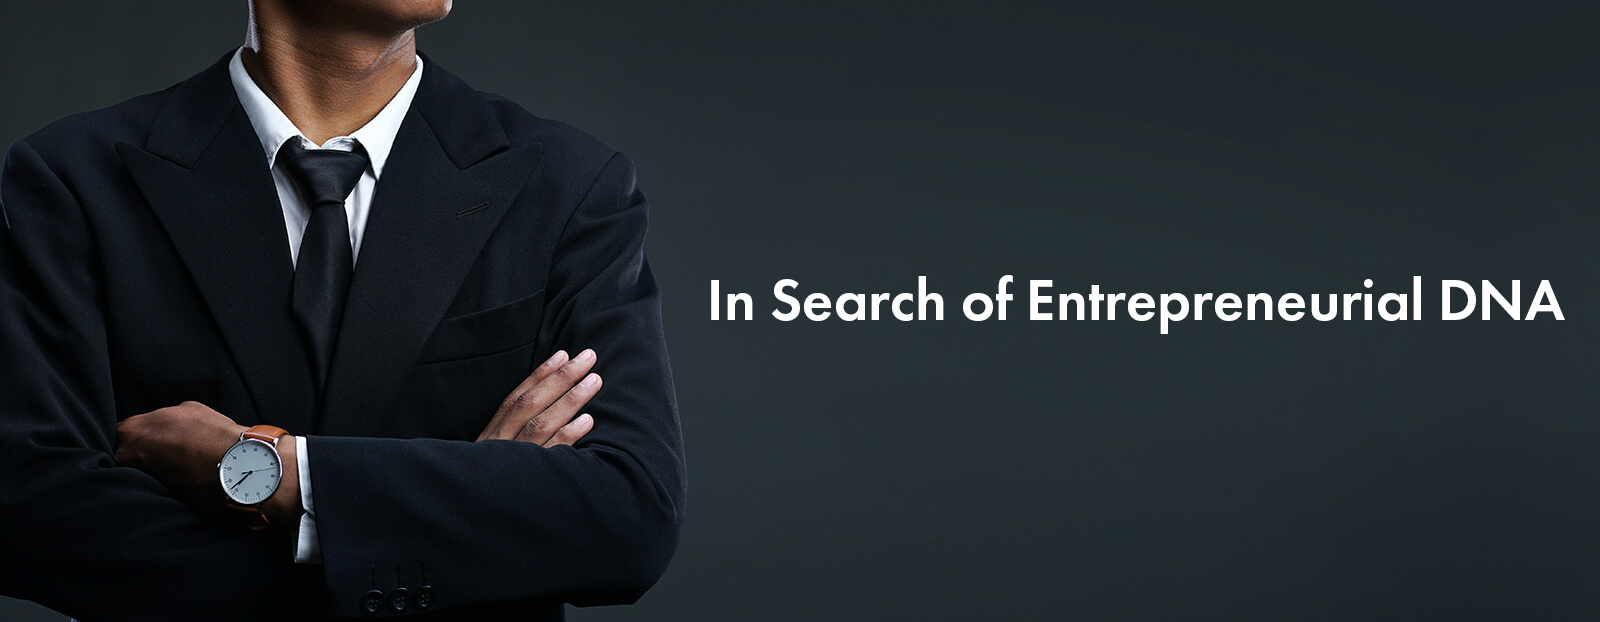 In Search of Entrepreneurial DNA